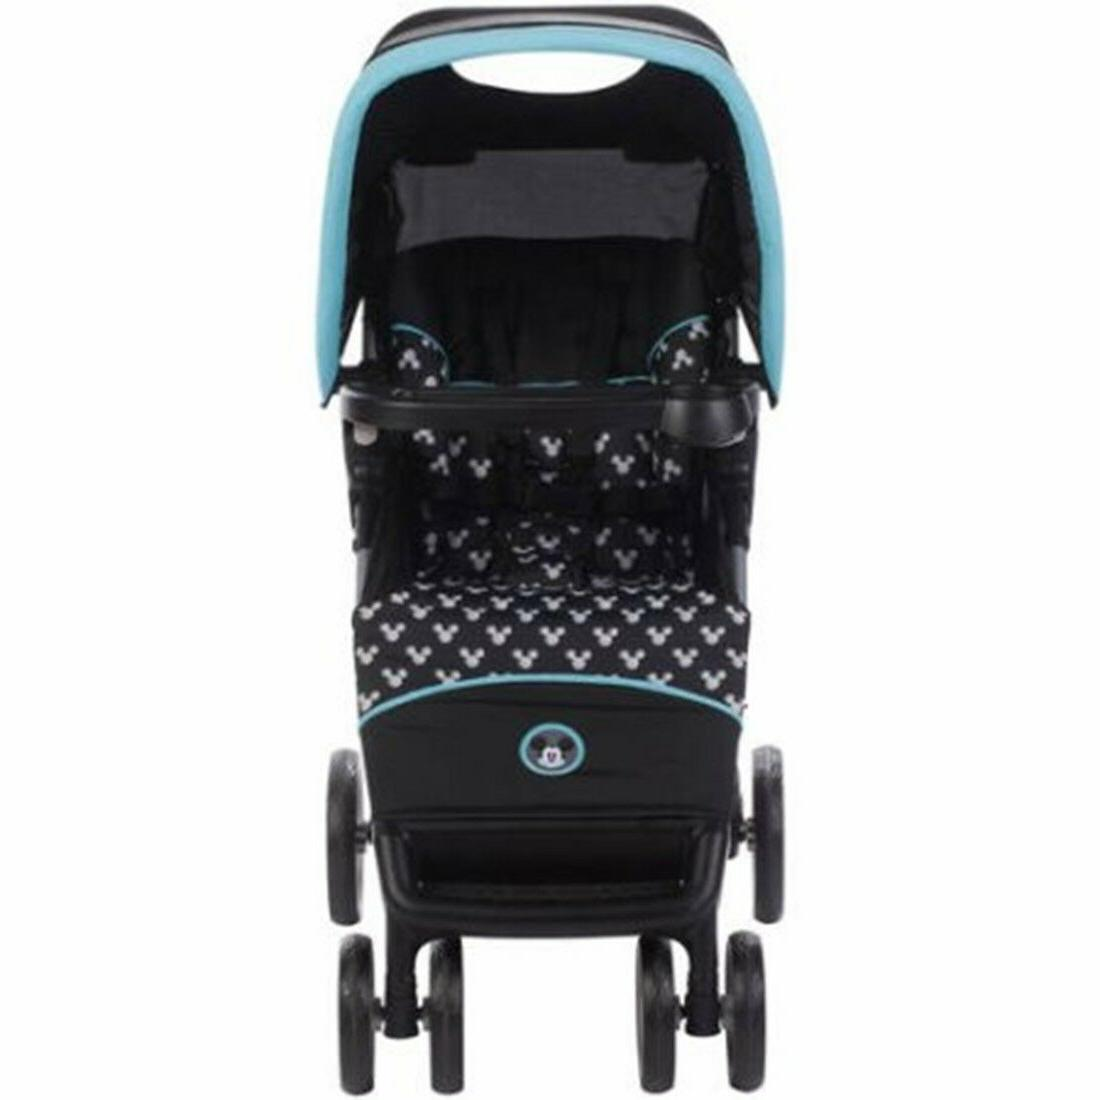 Disney Baby Stroller with Car Playard Crib Travel System